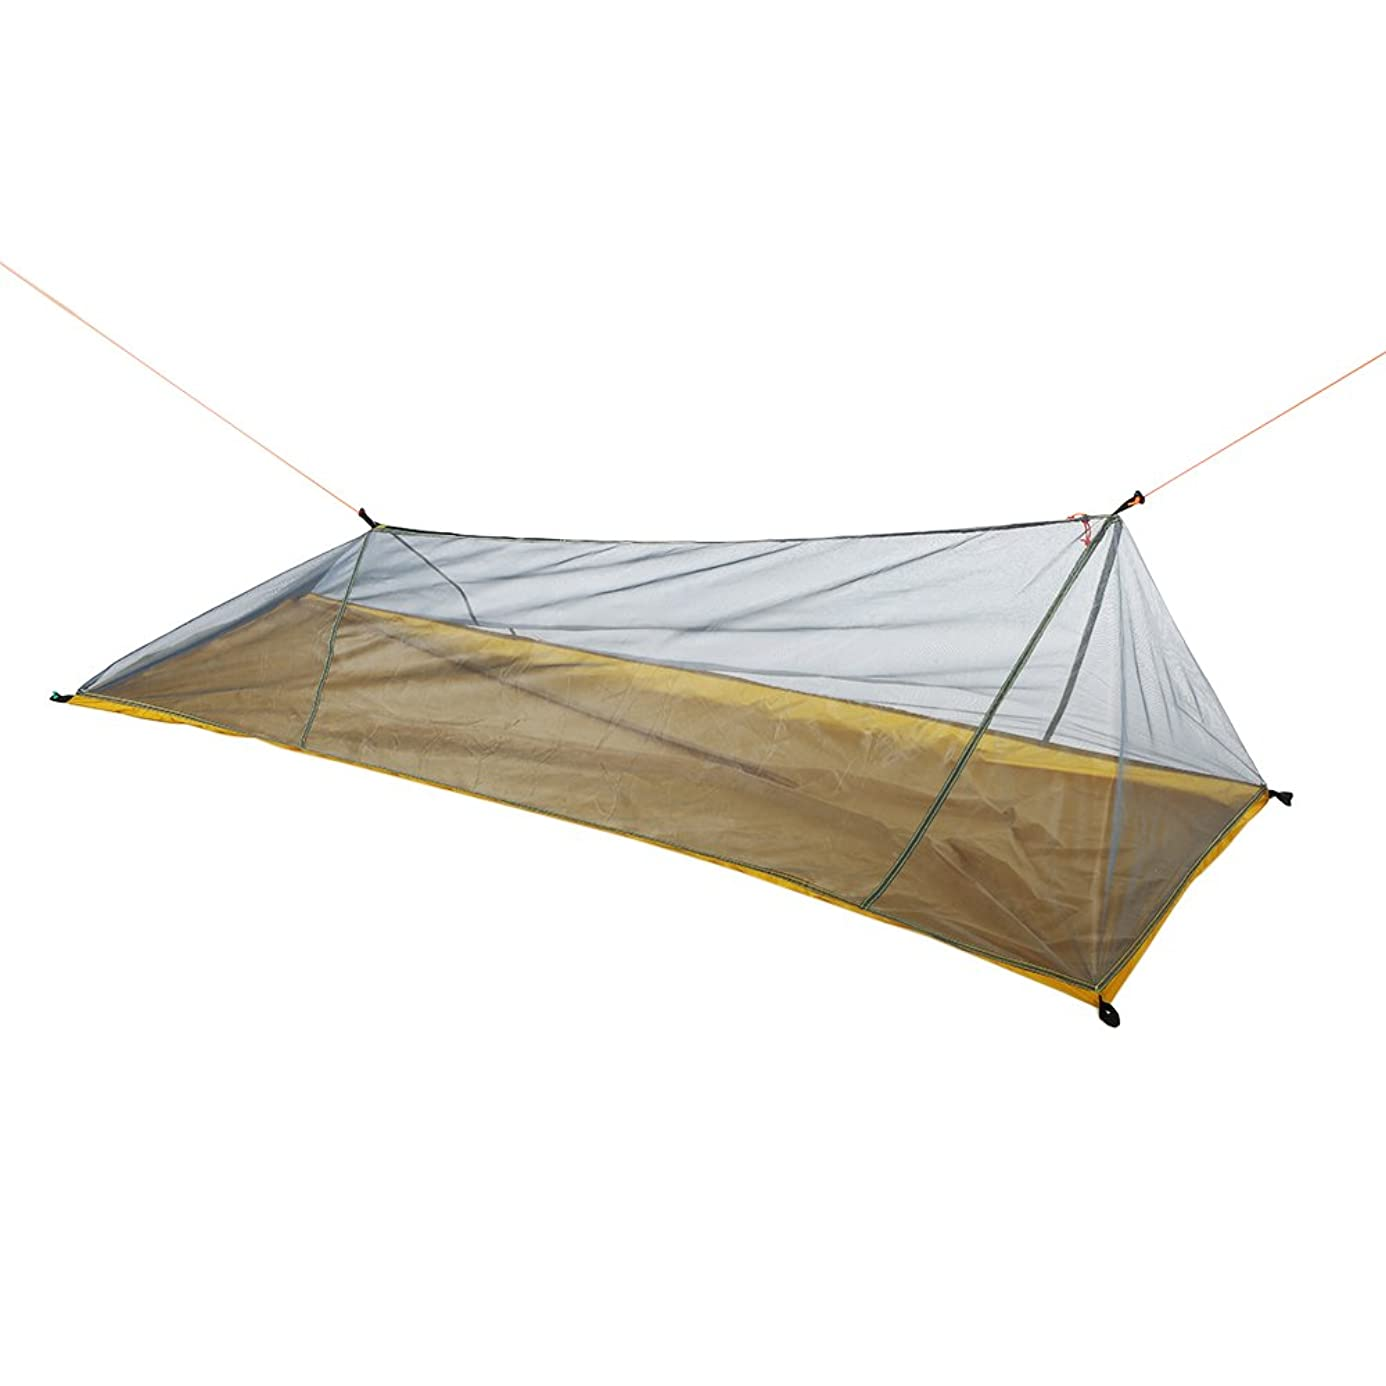 Lixada Mosquito Net Compact Mesh Tent Insect Bug Repellent Camping Tent